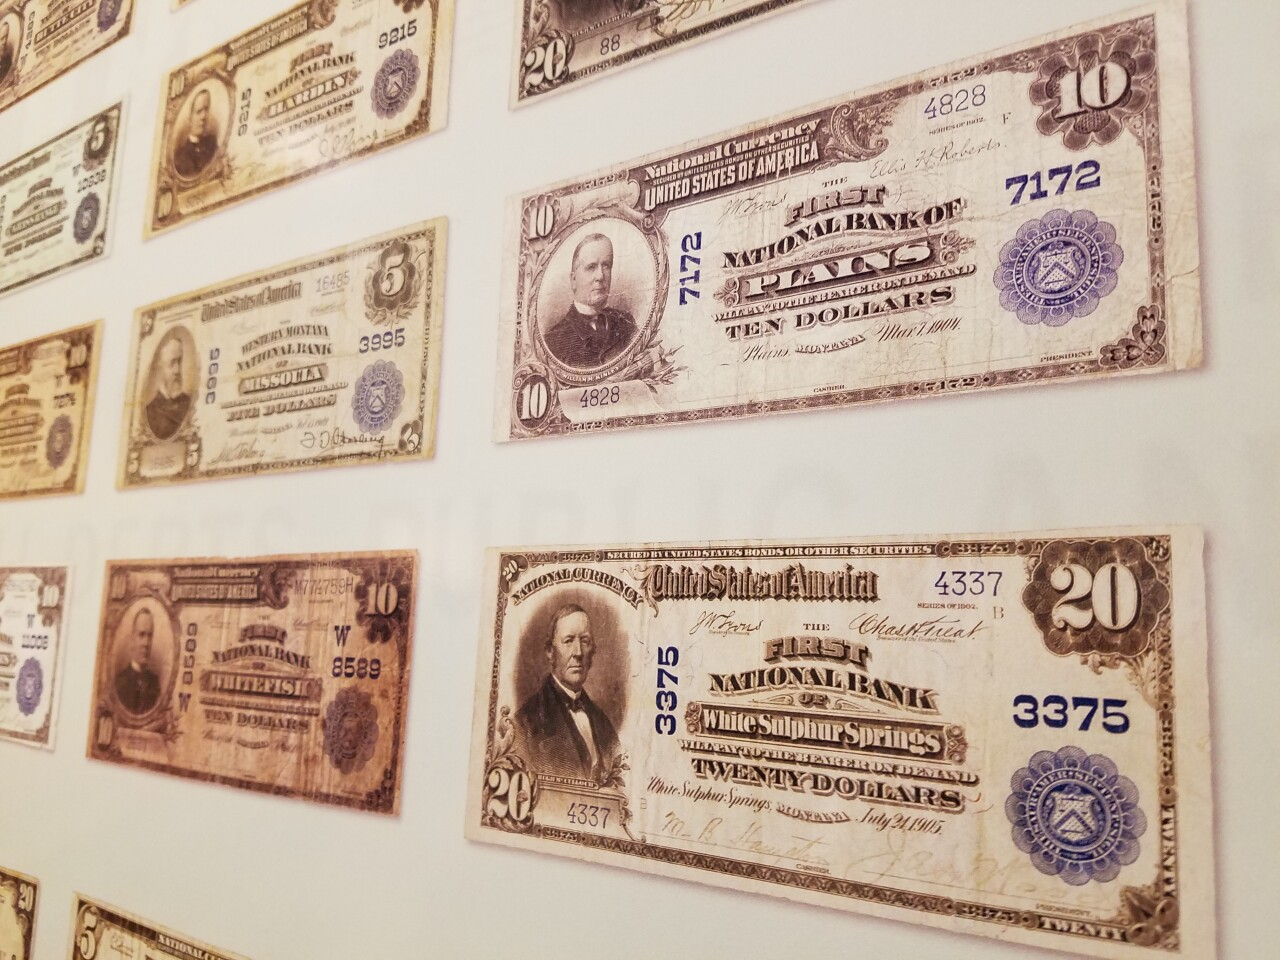 Variety of banknotes distributed in Montana before standardized bills